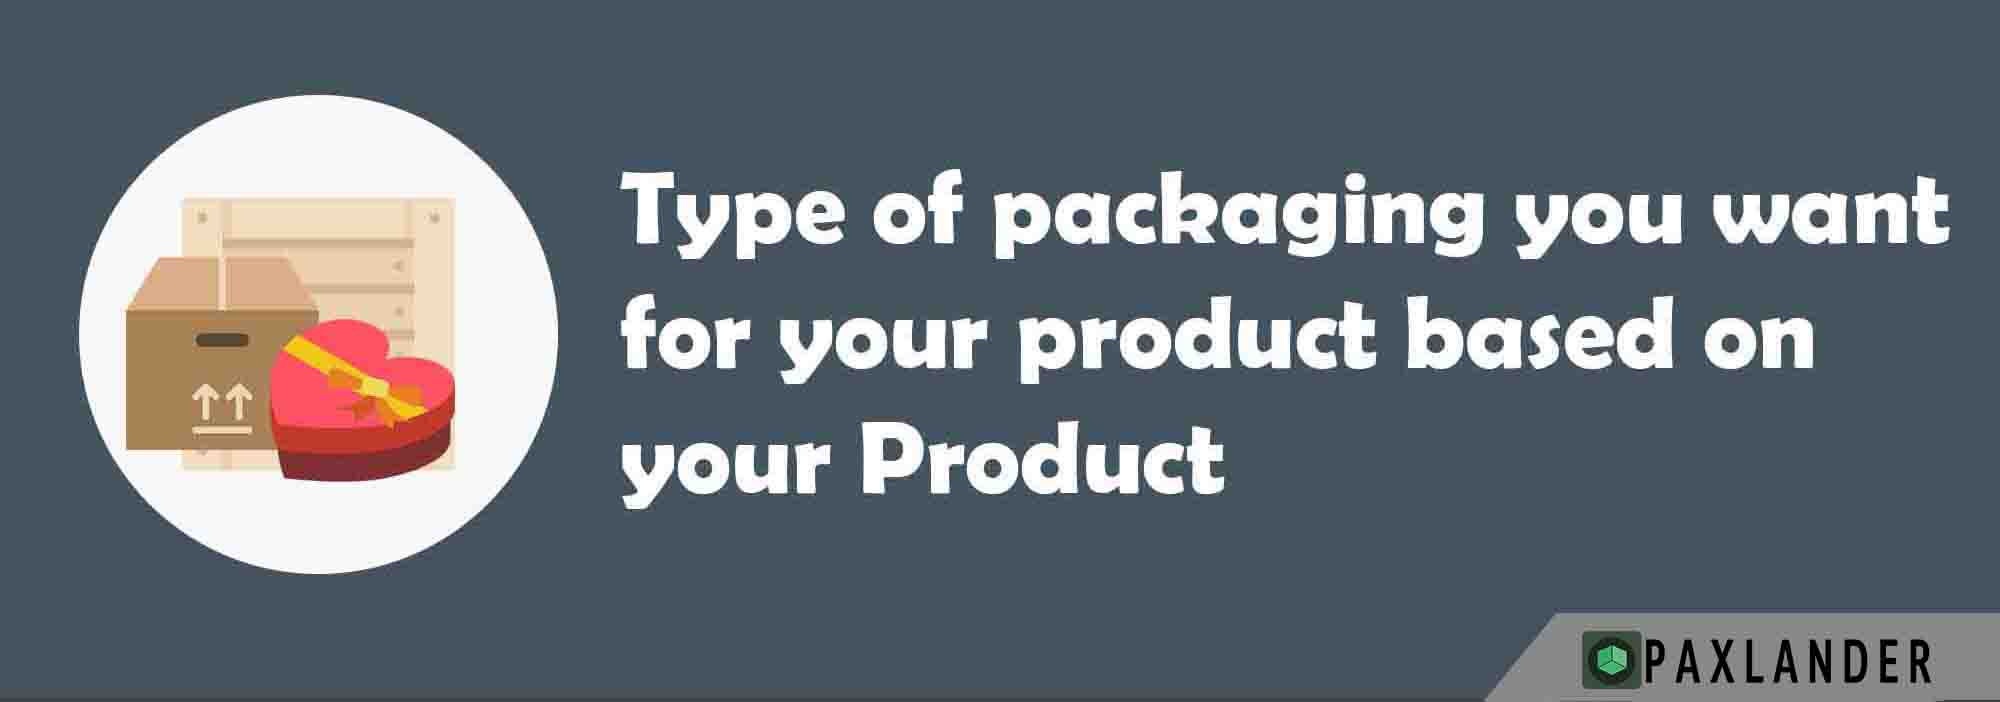 Decide on your packaging, after all, it needs to fit your product just right!